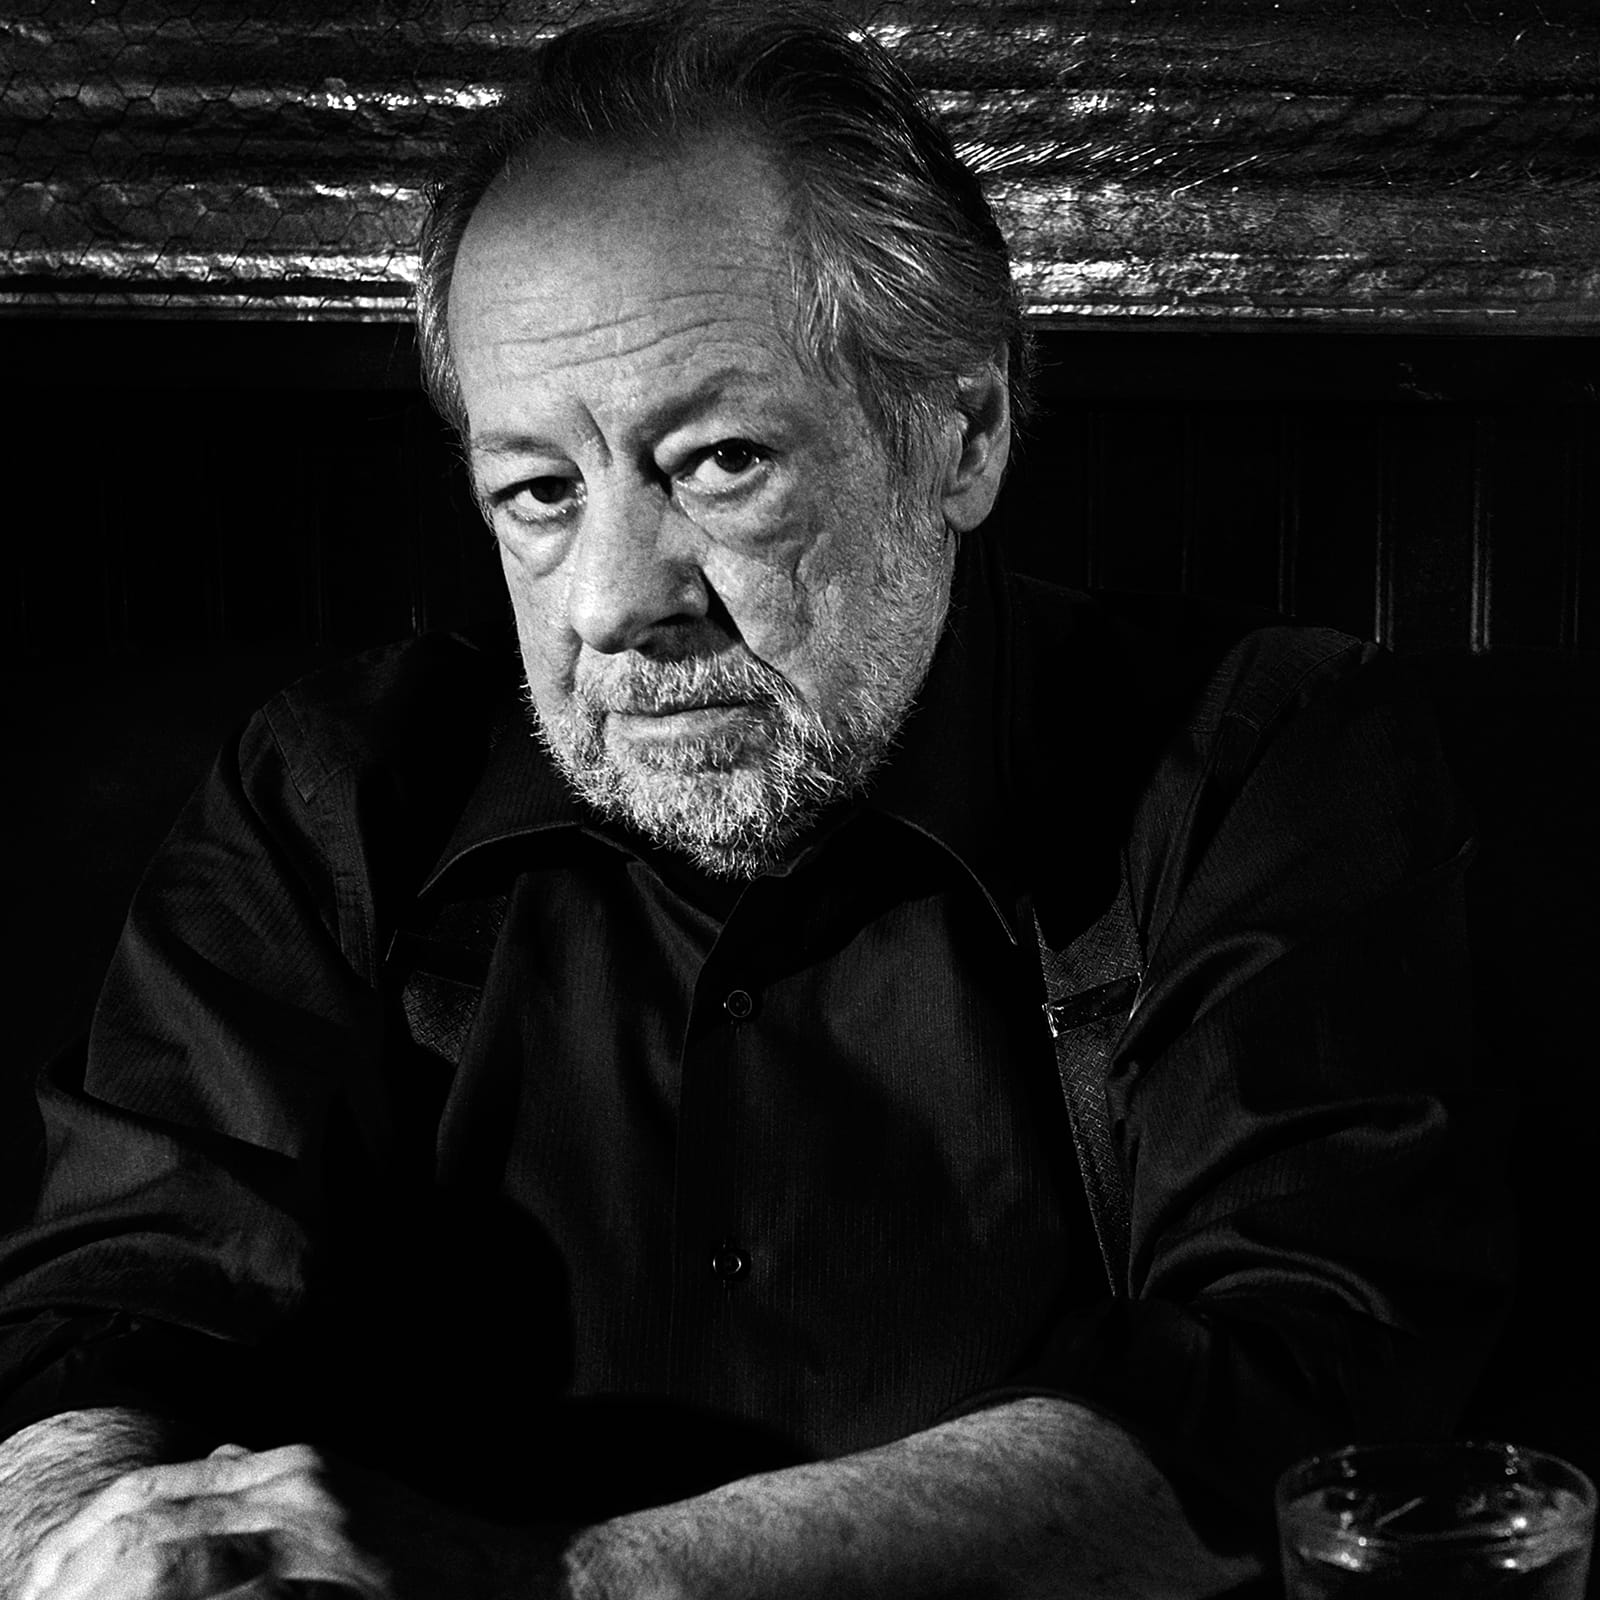 The Current - Ricky Jay's Top 10